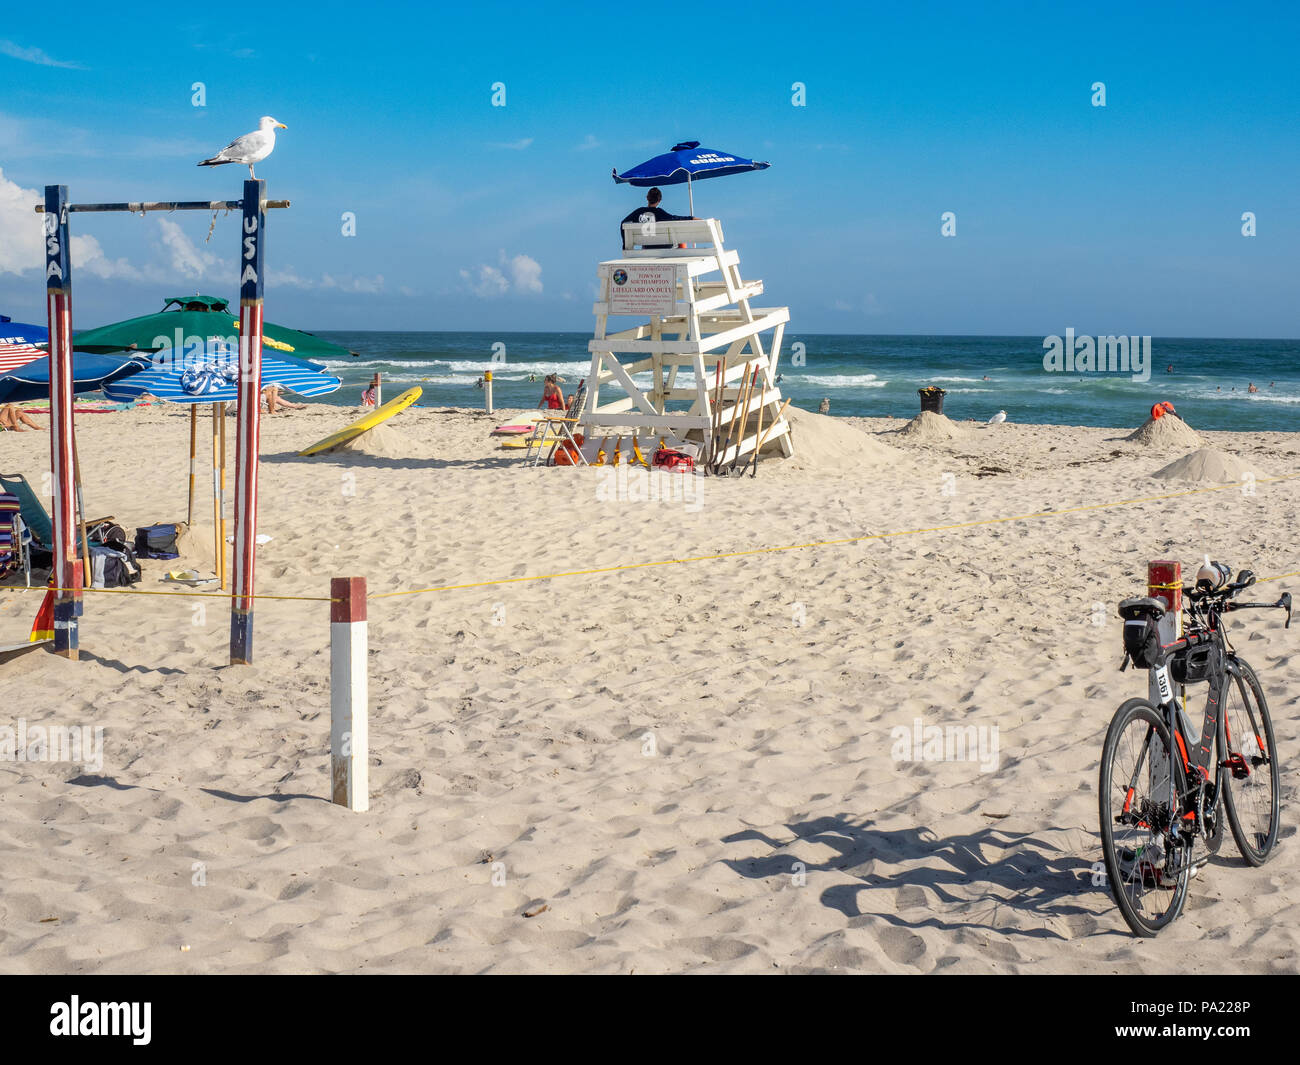 Day at the beach with lifeguard on duty, The Hamptons, New York, USA. - Stock Image